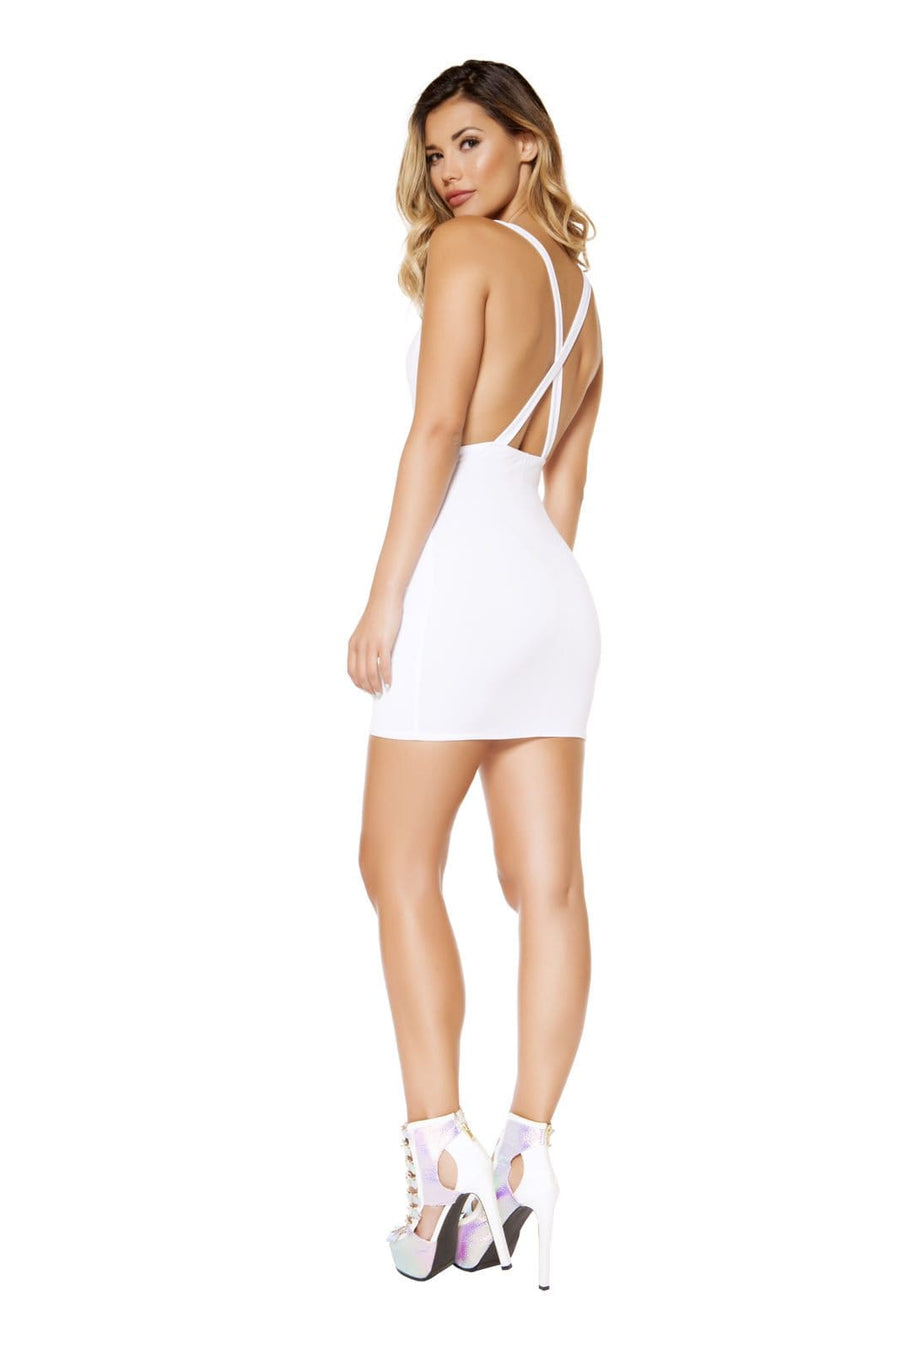 Roma White Cowl Neck Open Side Criss Cross Back Party Mini Dress Apparel & Accessories > Clothing > Dresses